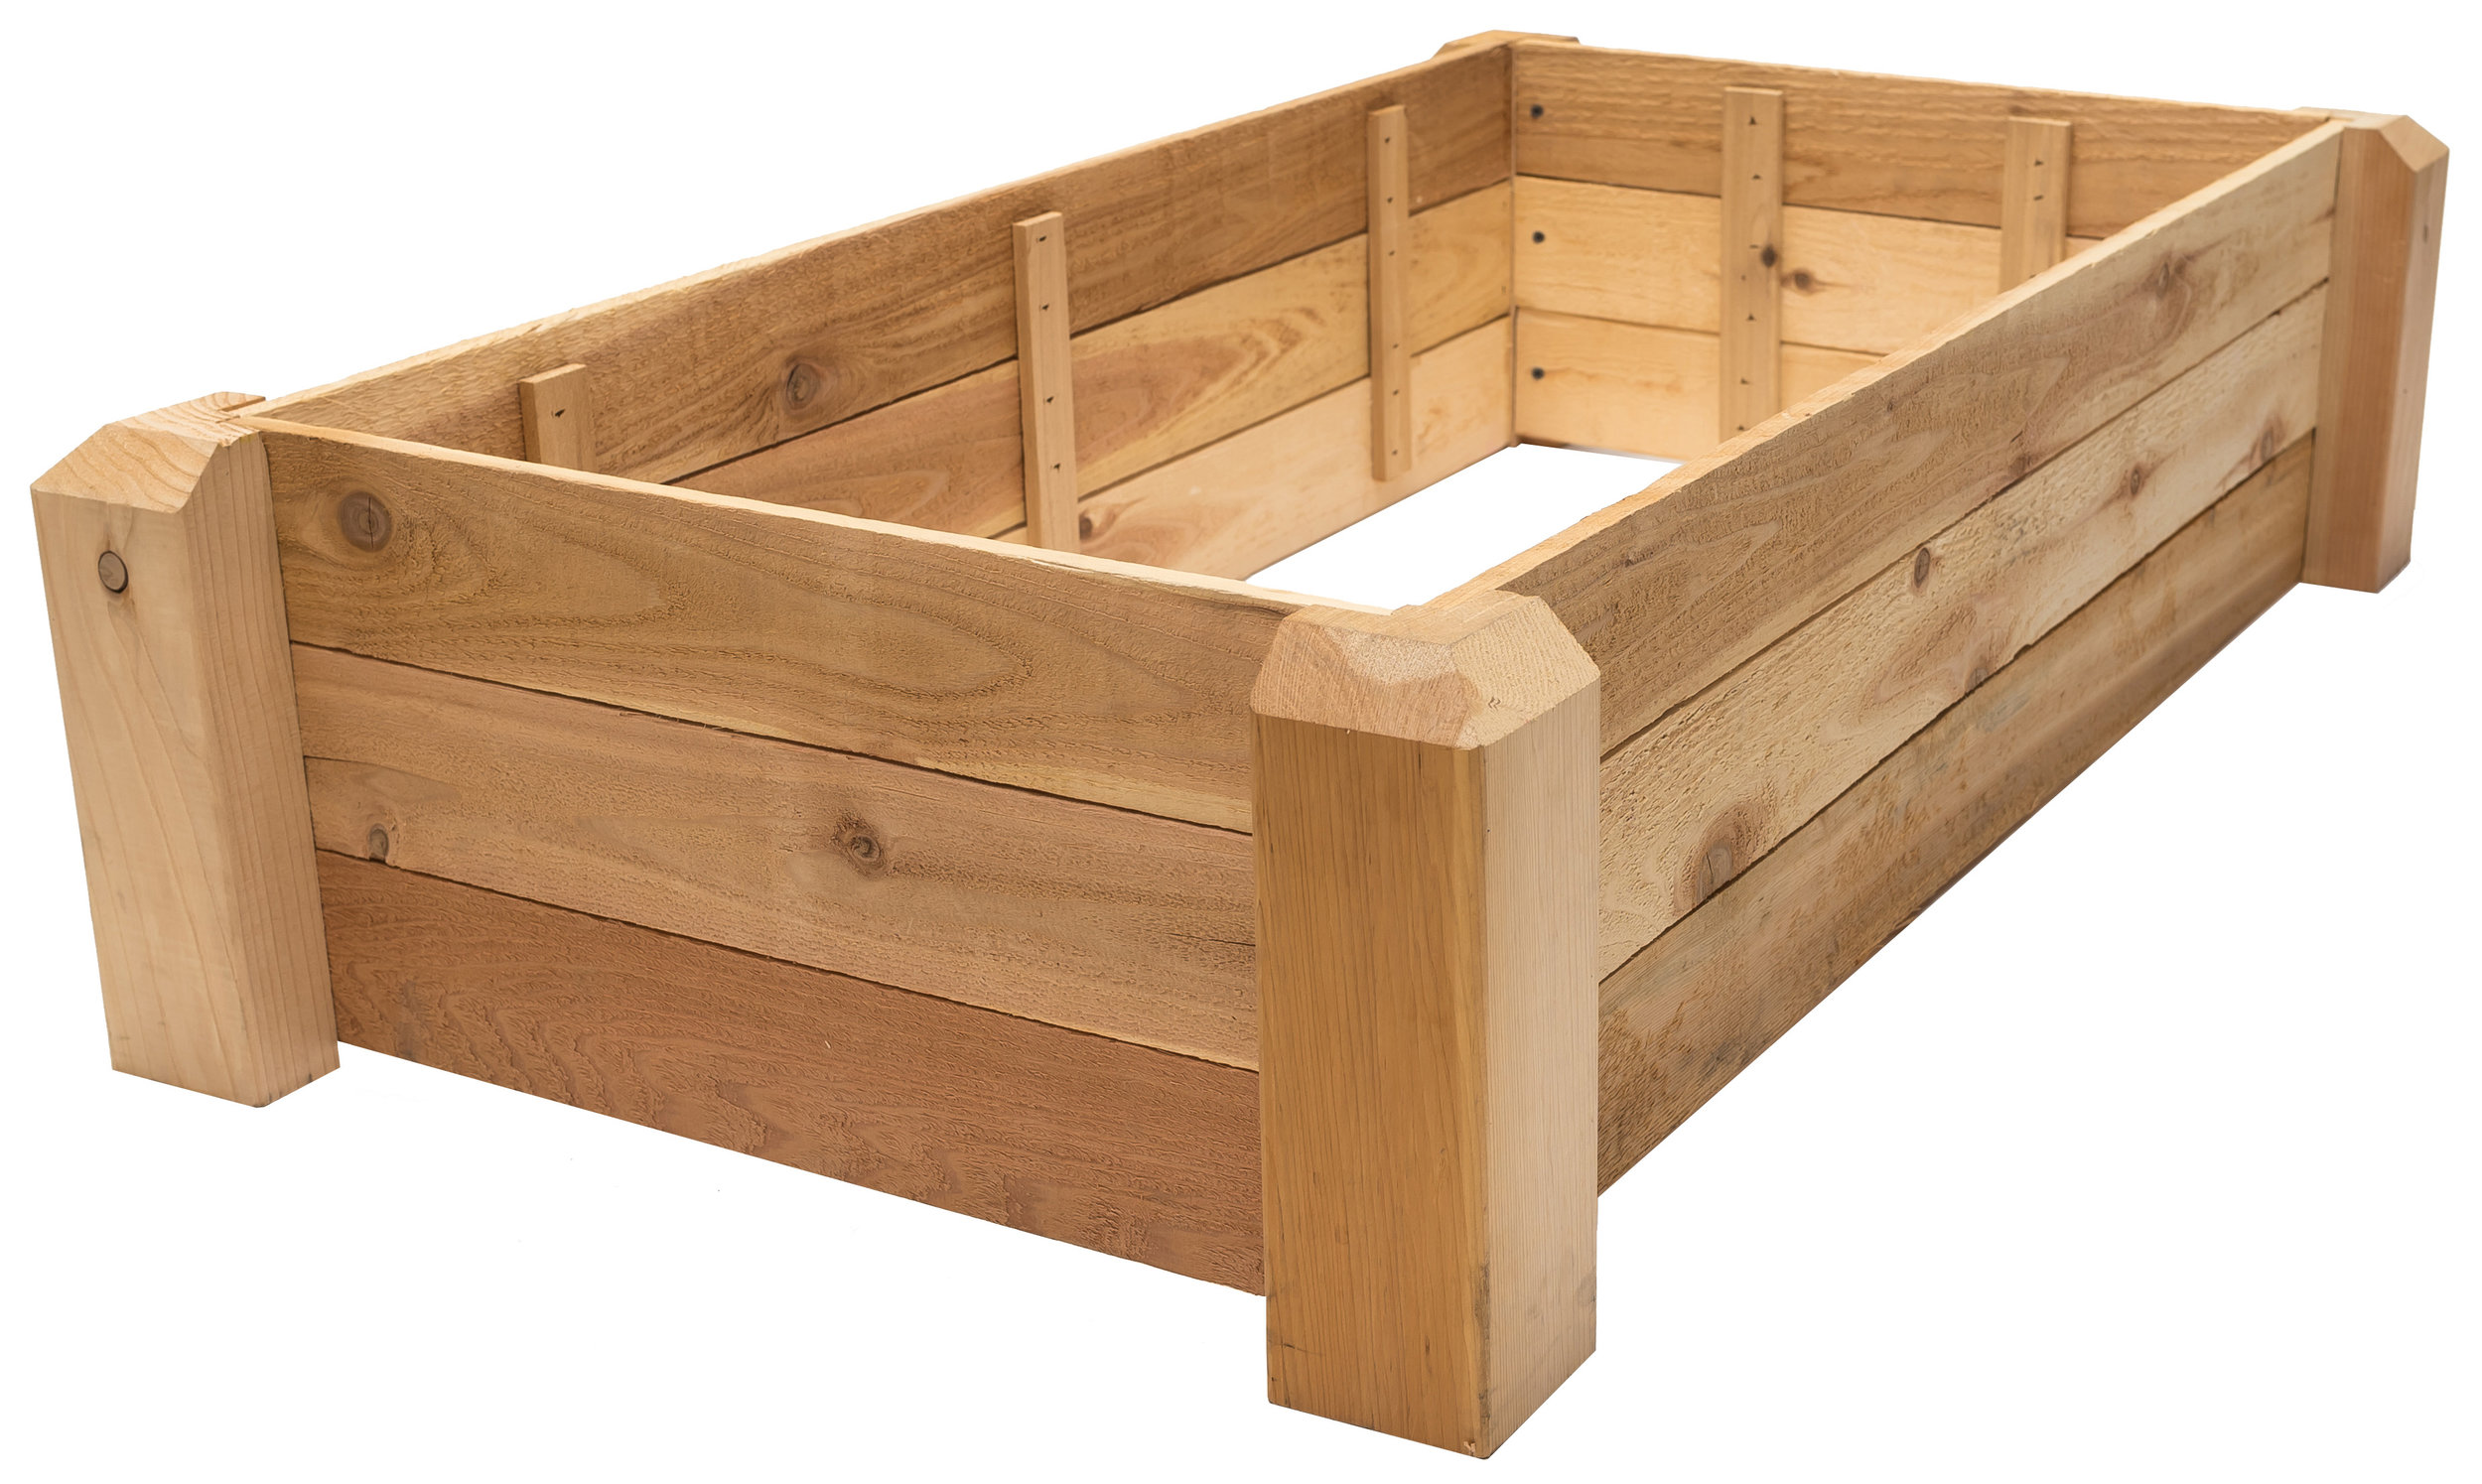 raised bed 2'x4' height: 10.5""